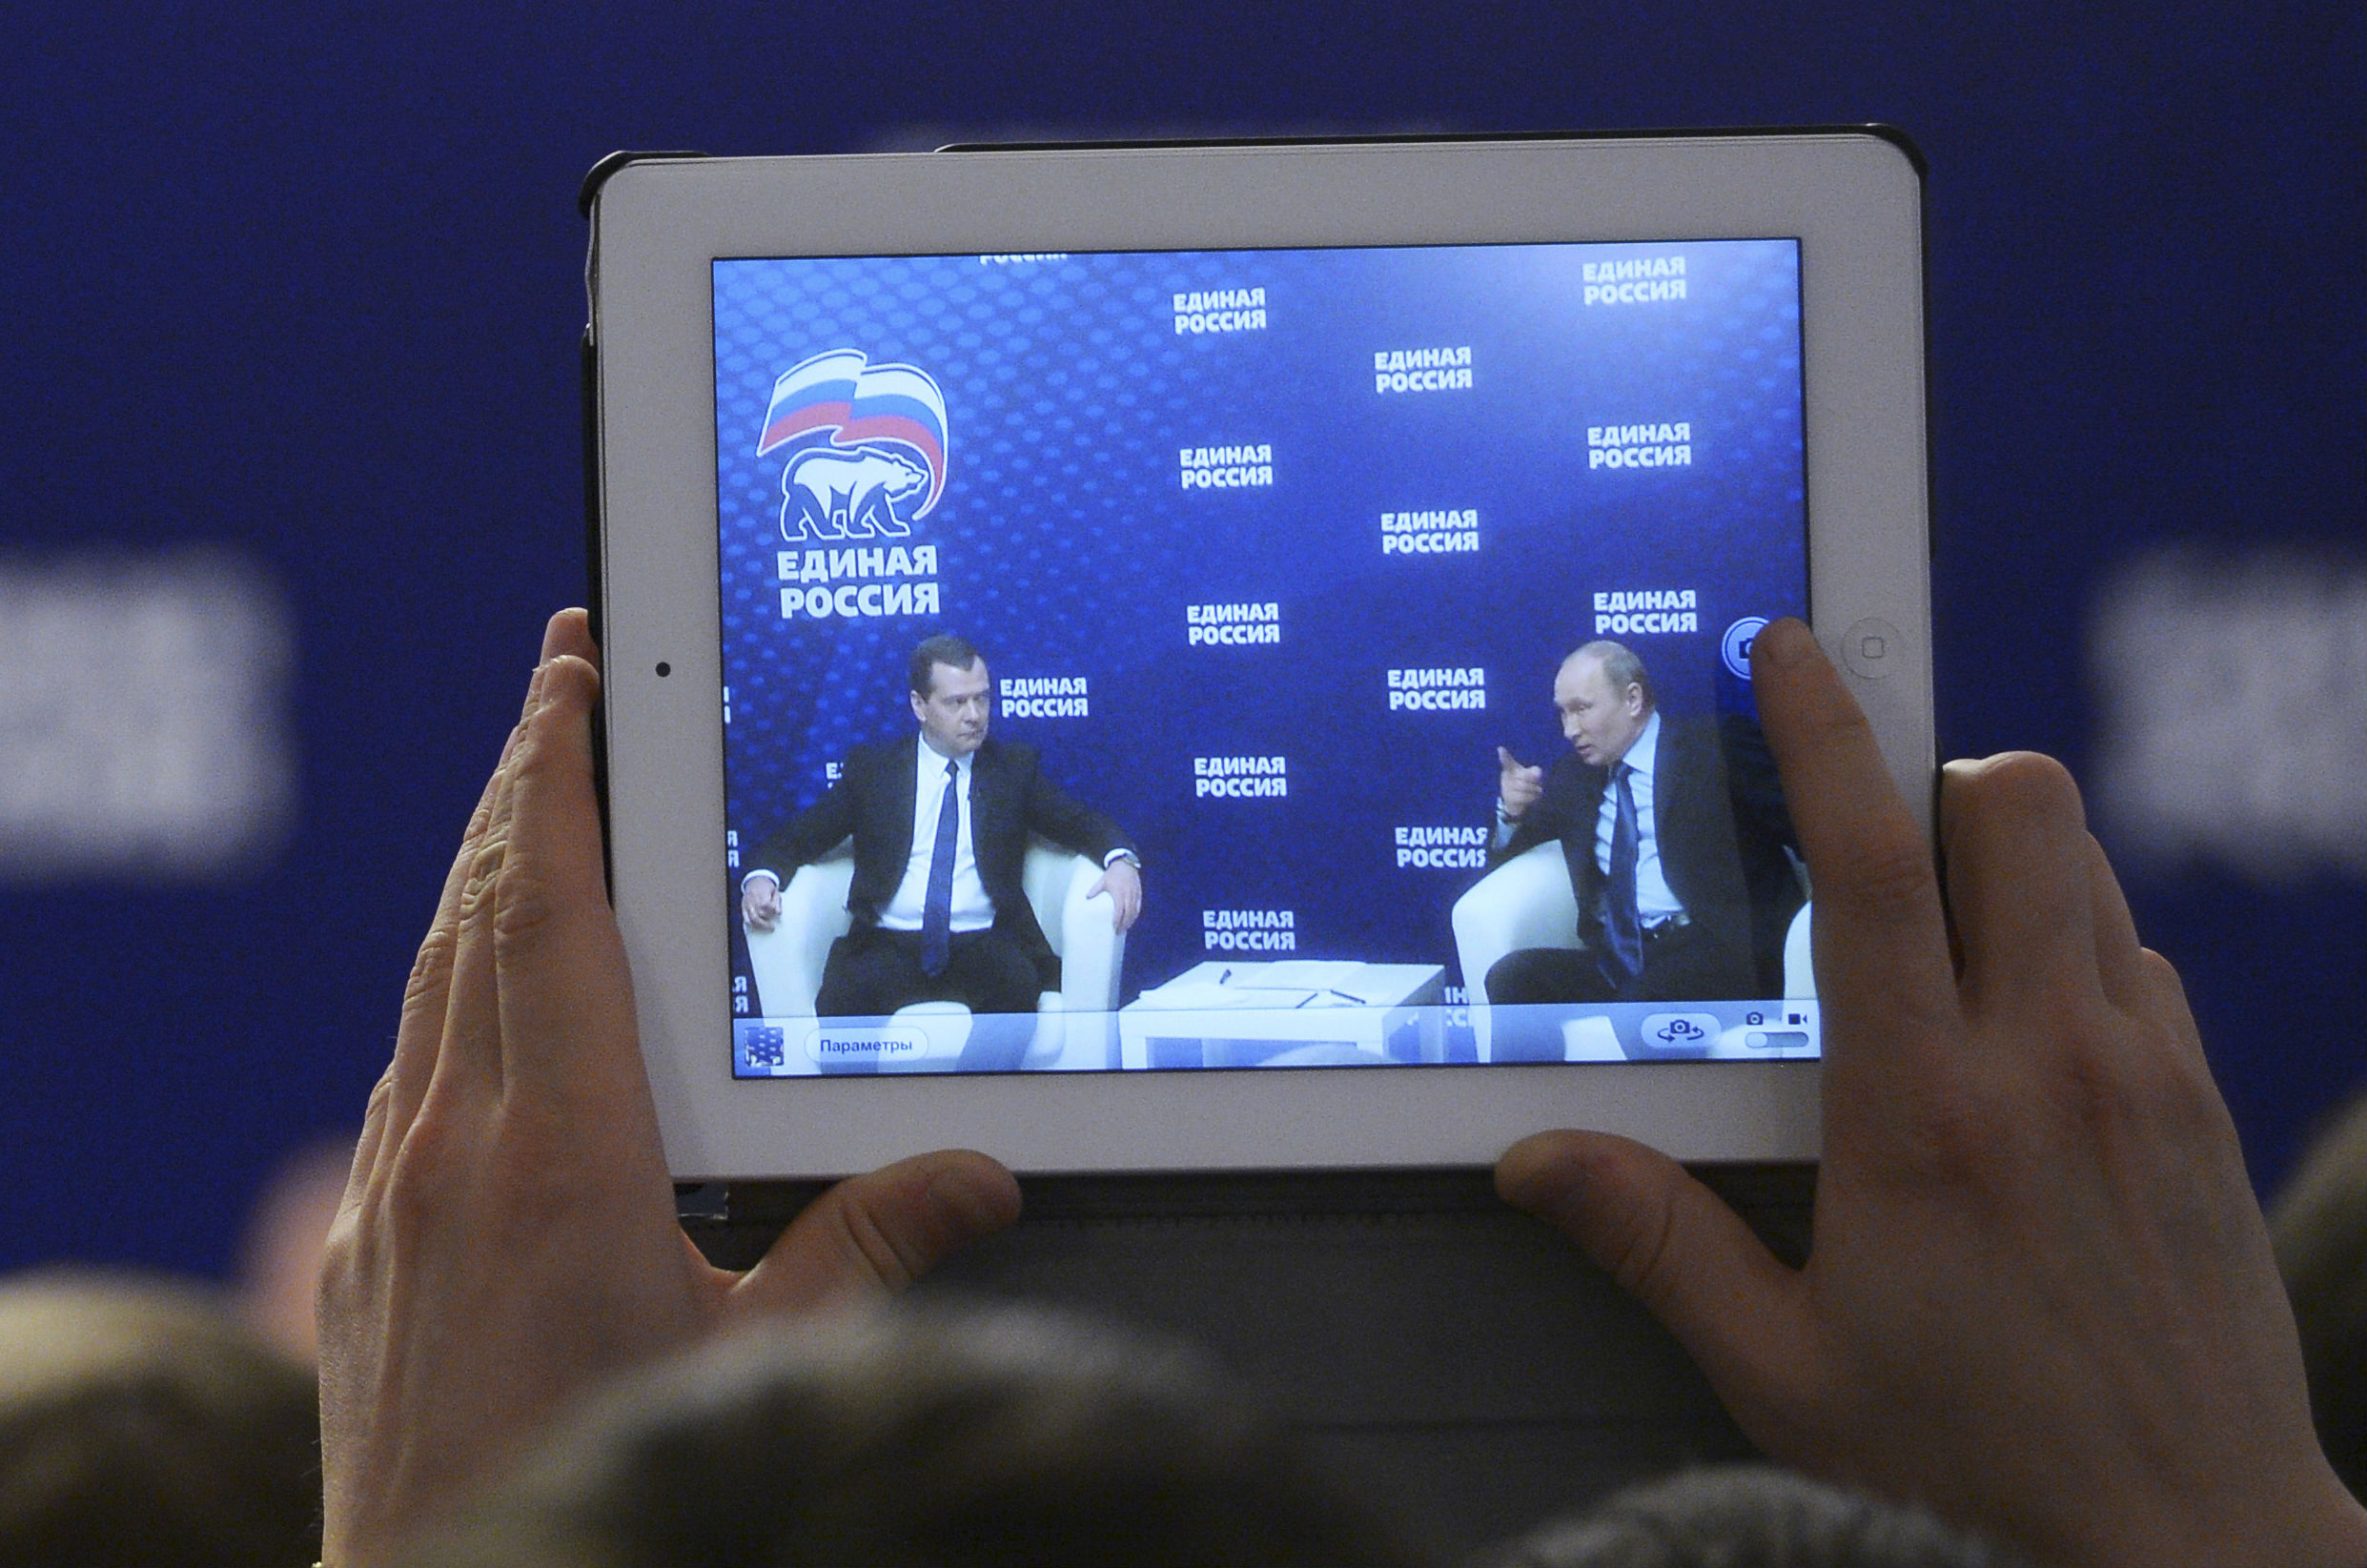 Russia's President Vladimir Putin (R) and Prime Minister Dmitry Medvedev are seen on a screen of a tablet computer during a meeting with members and activists of the United Russia political party in Moscow region, October 3, 2013. Credit: REUTERS/Alexander Astafyev/RIA Novosti/Pool